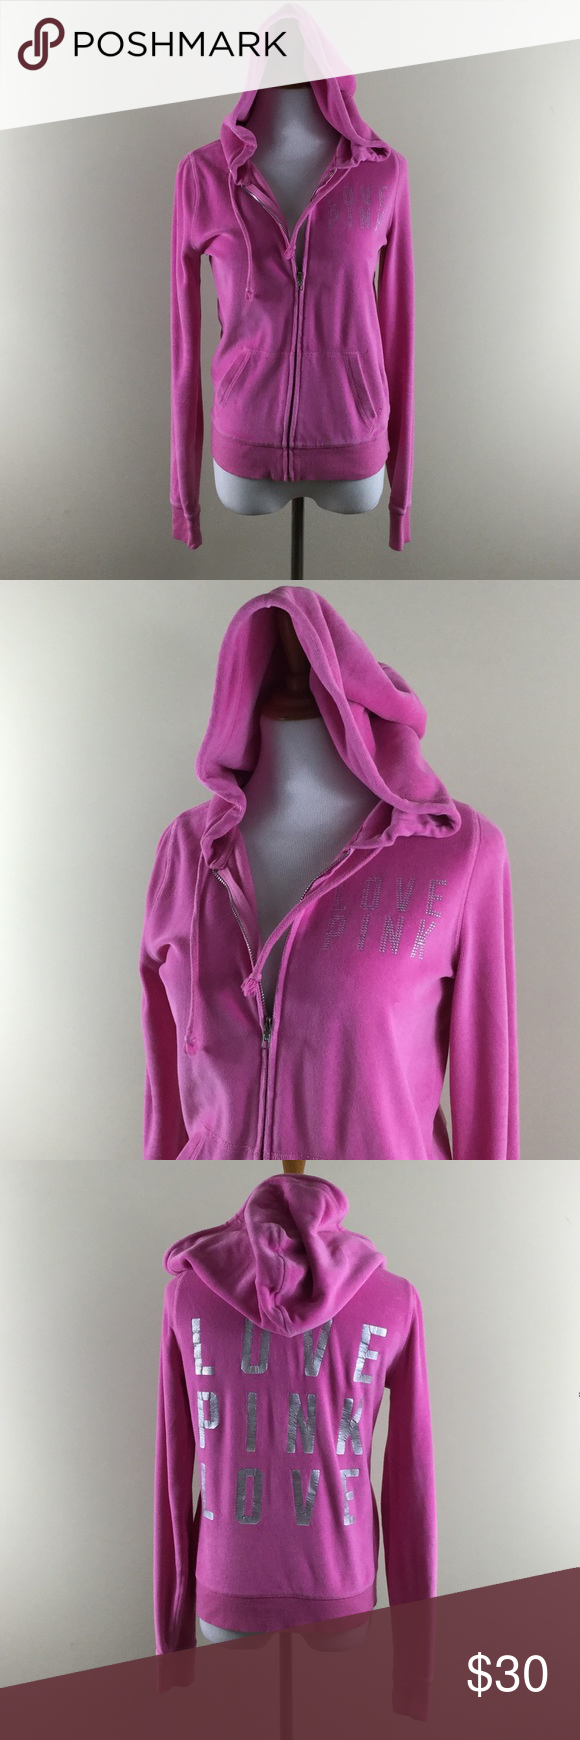 PINK Hoodie Jacket S Victorias Secret pocket zip Good condition PINK Victoria's Secret Jackets & Coats